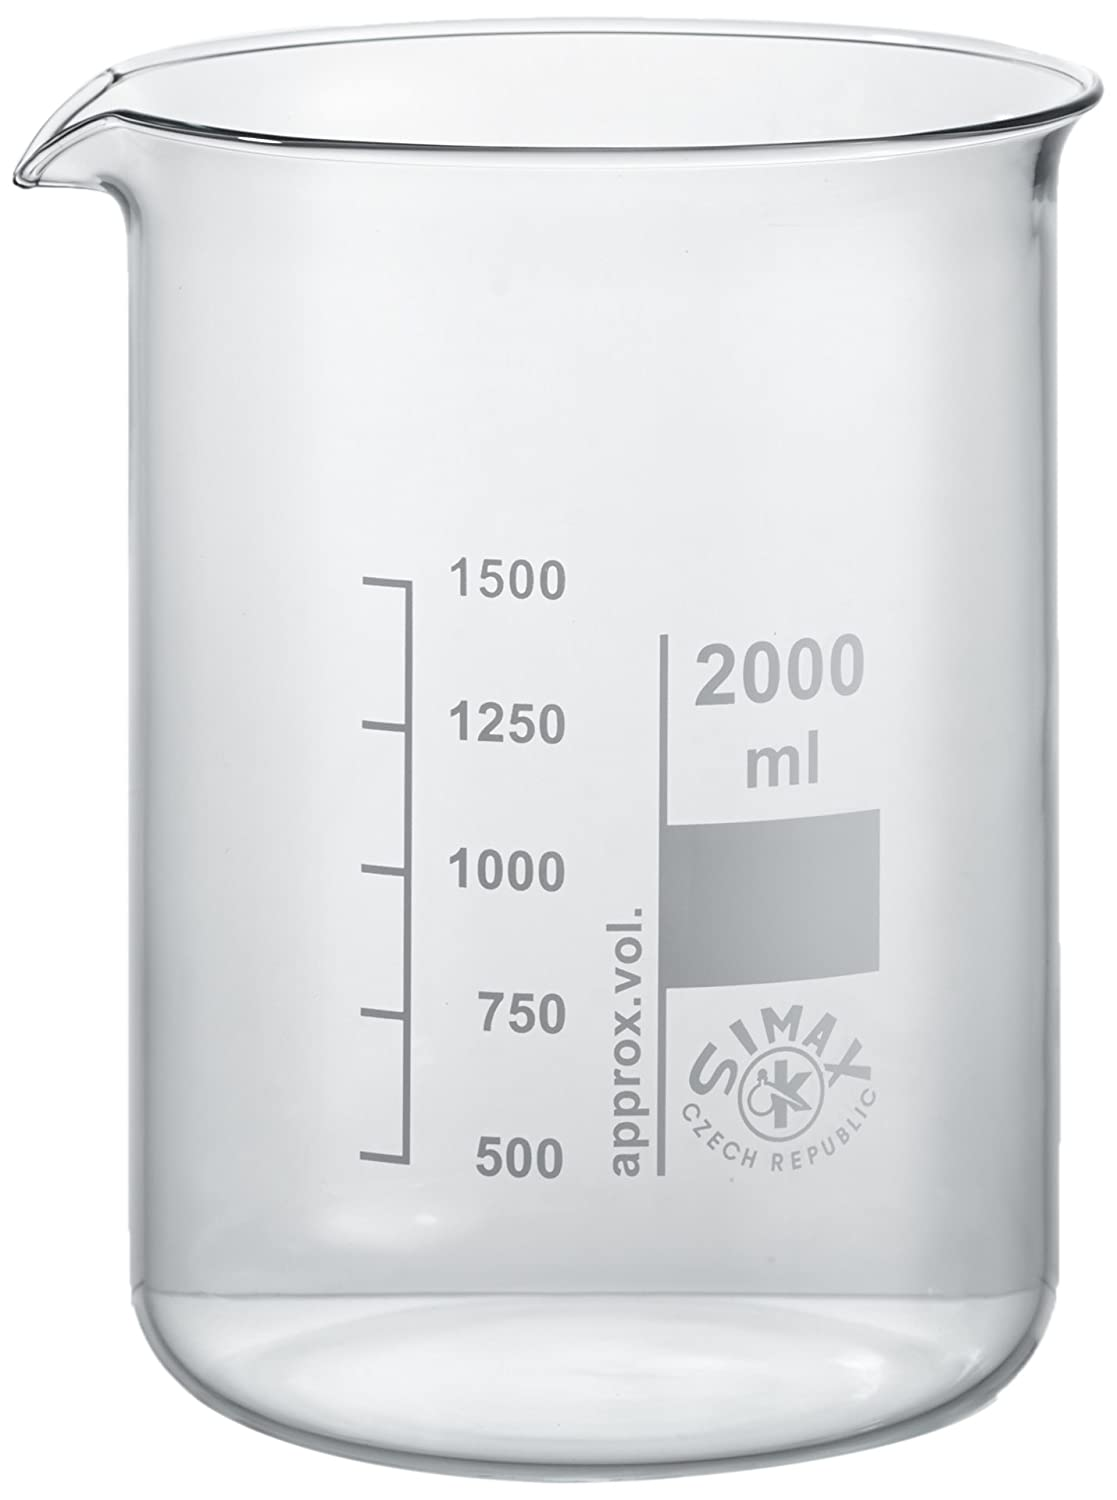 NeoLab E-1043 Low-Form Glass Beakers, 2000 ml, Pack of 4 2000ml